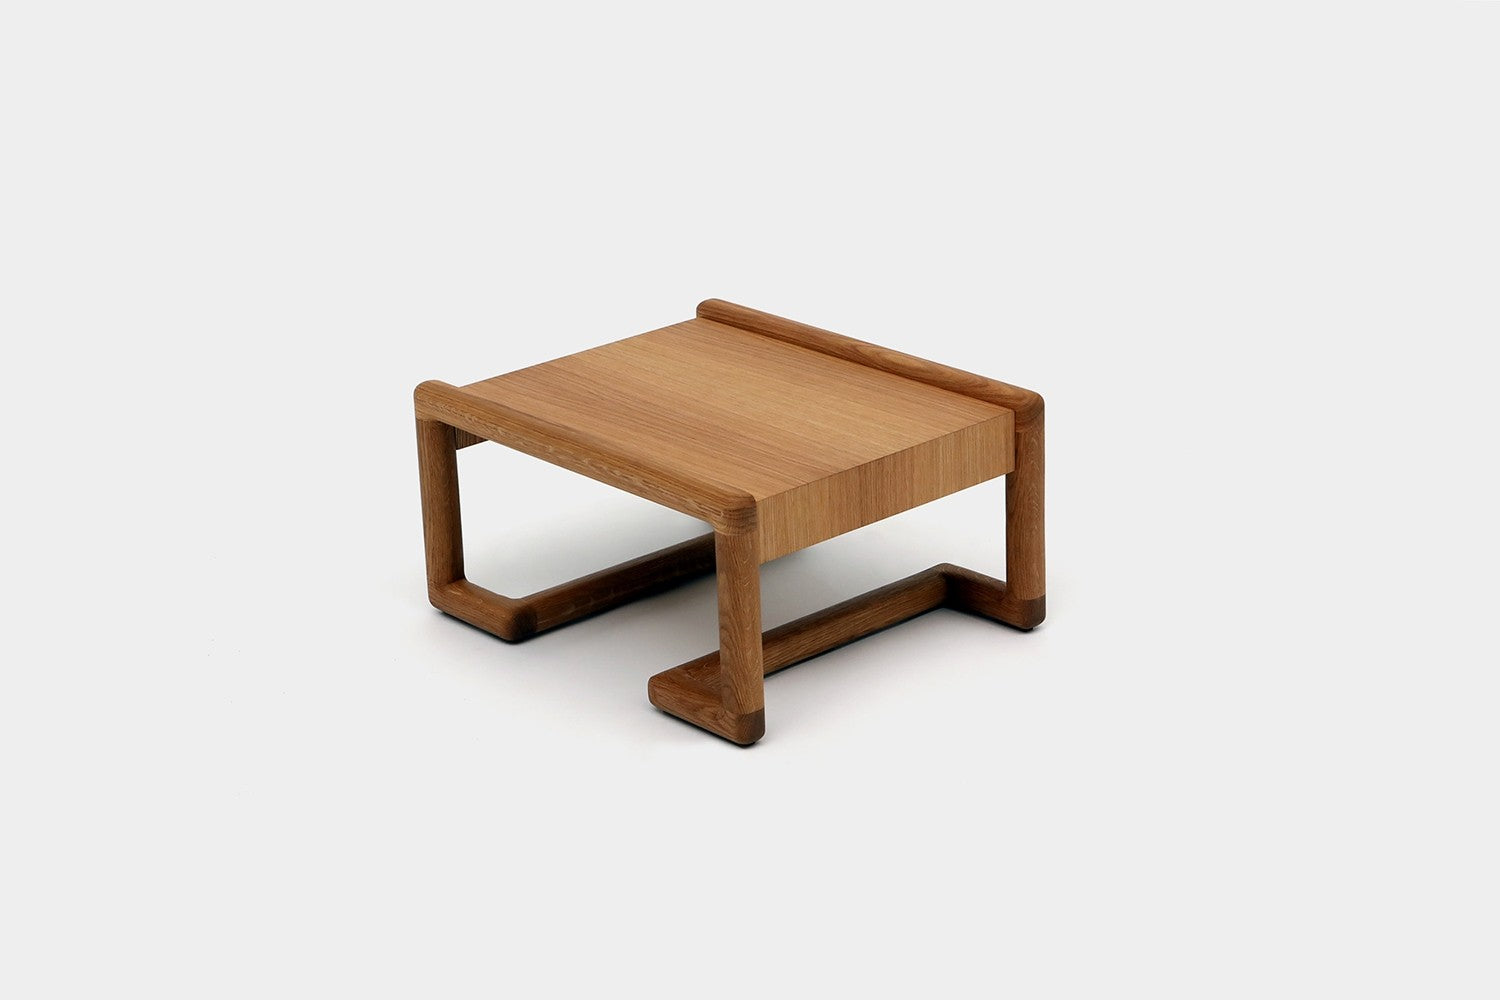 Untitled Tables